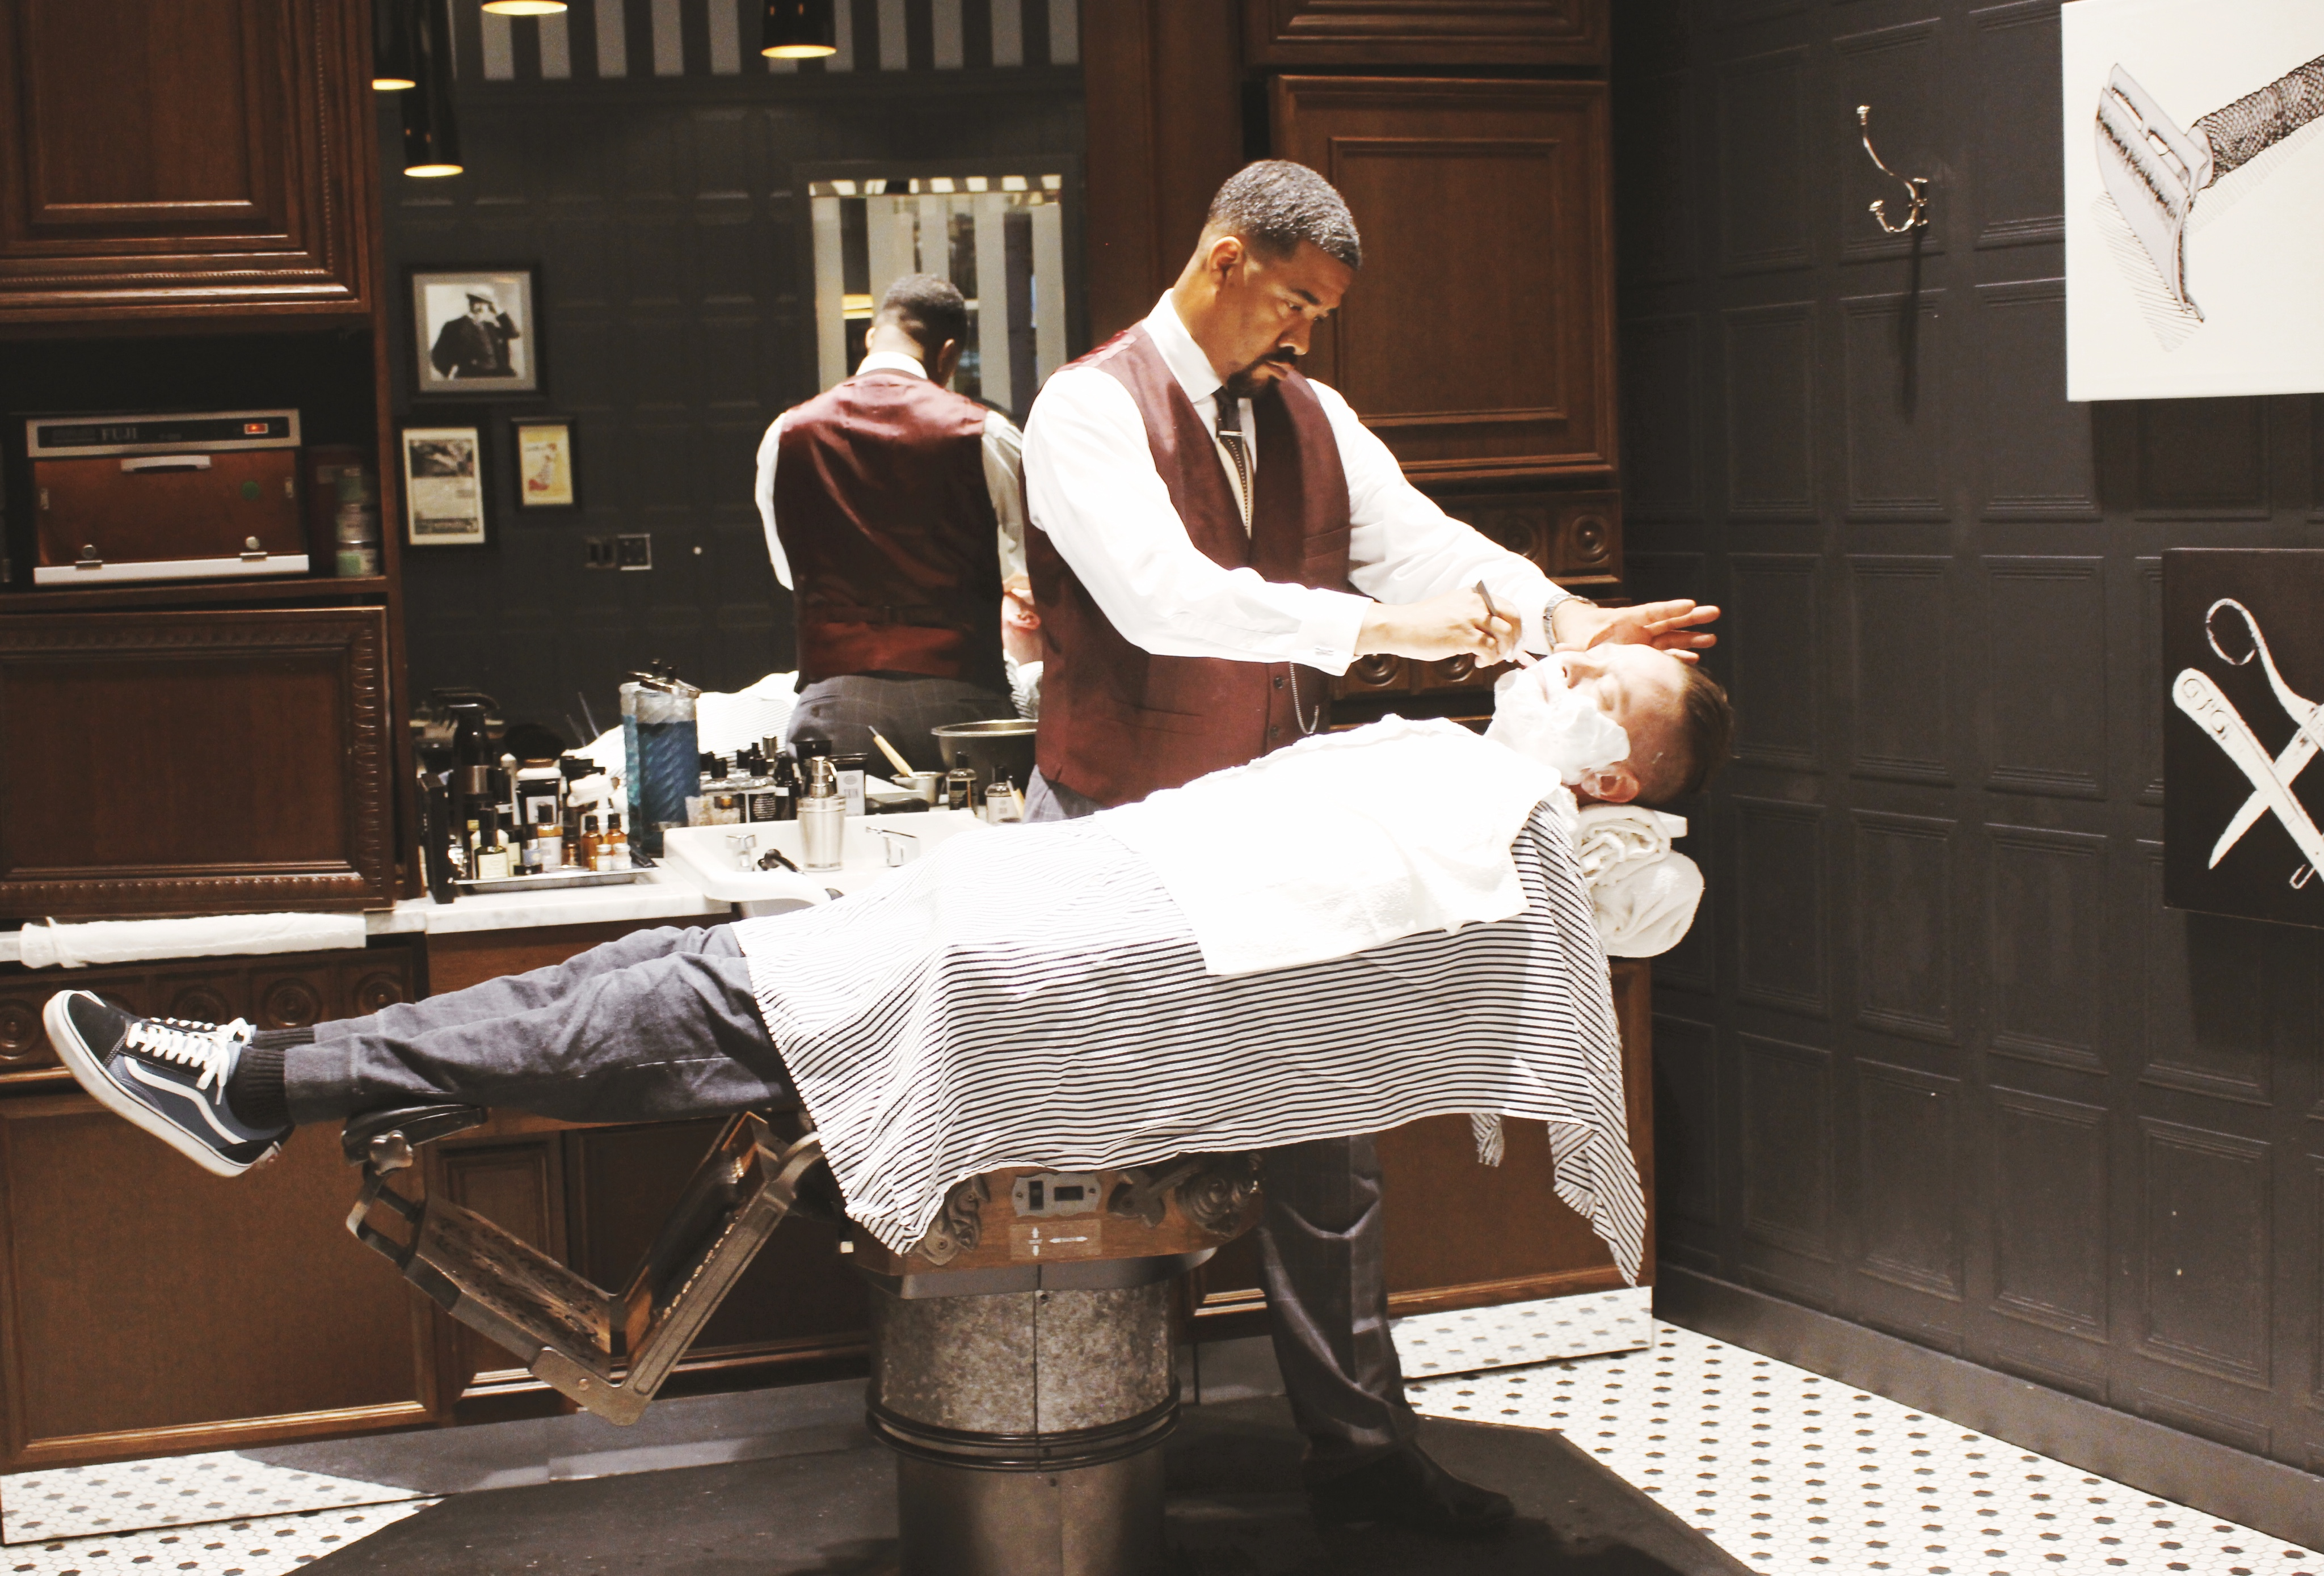 Old School Barber Chair Manly Gifting With The Art Of Shaving Christie Moeller